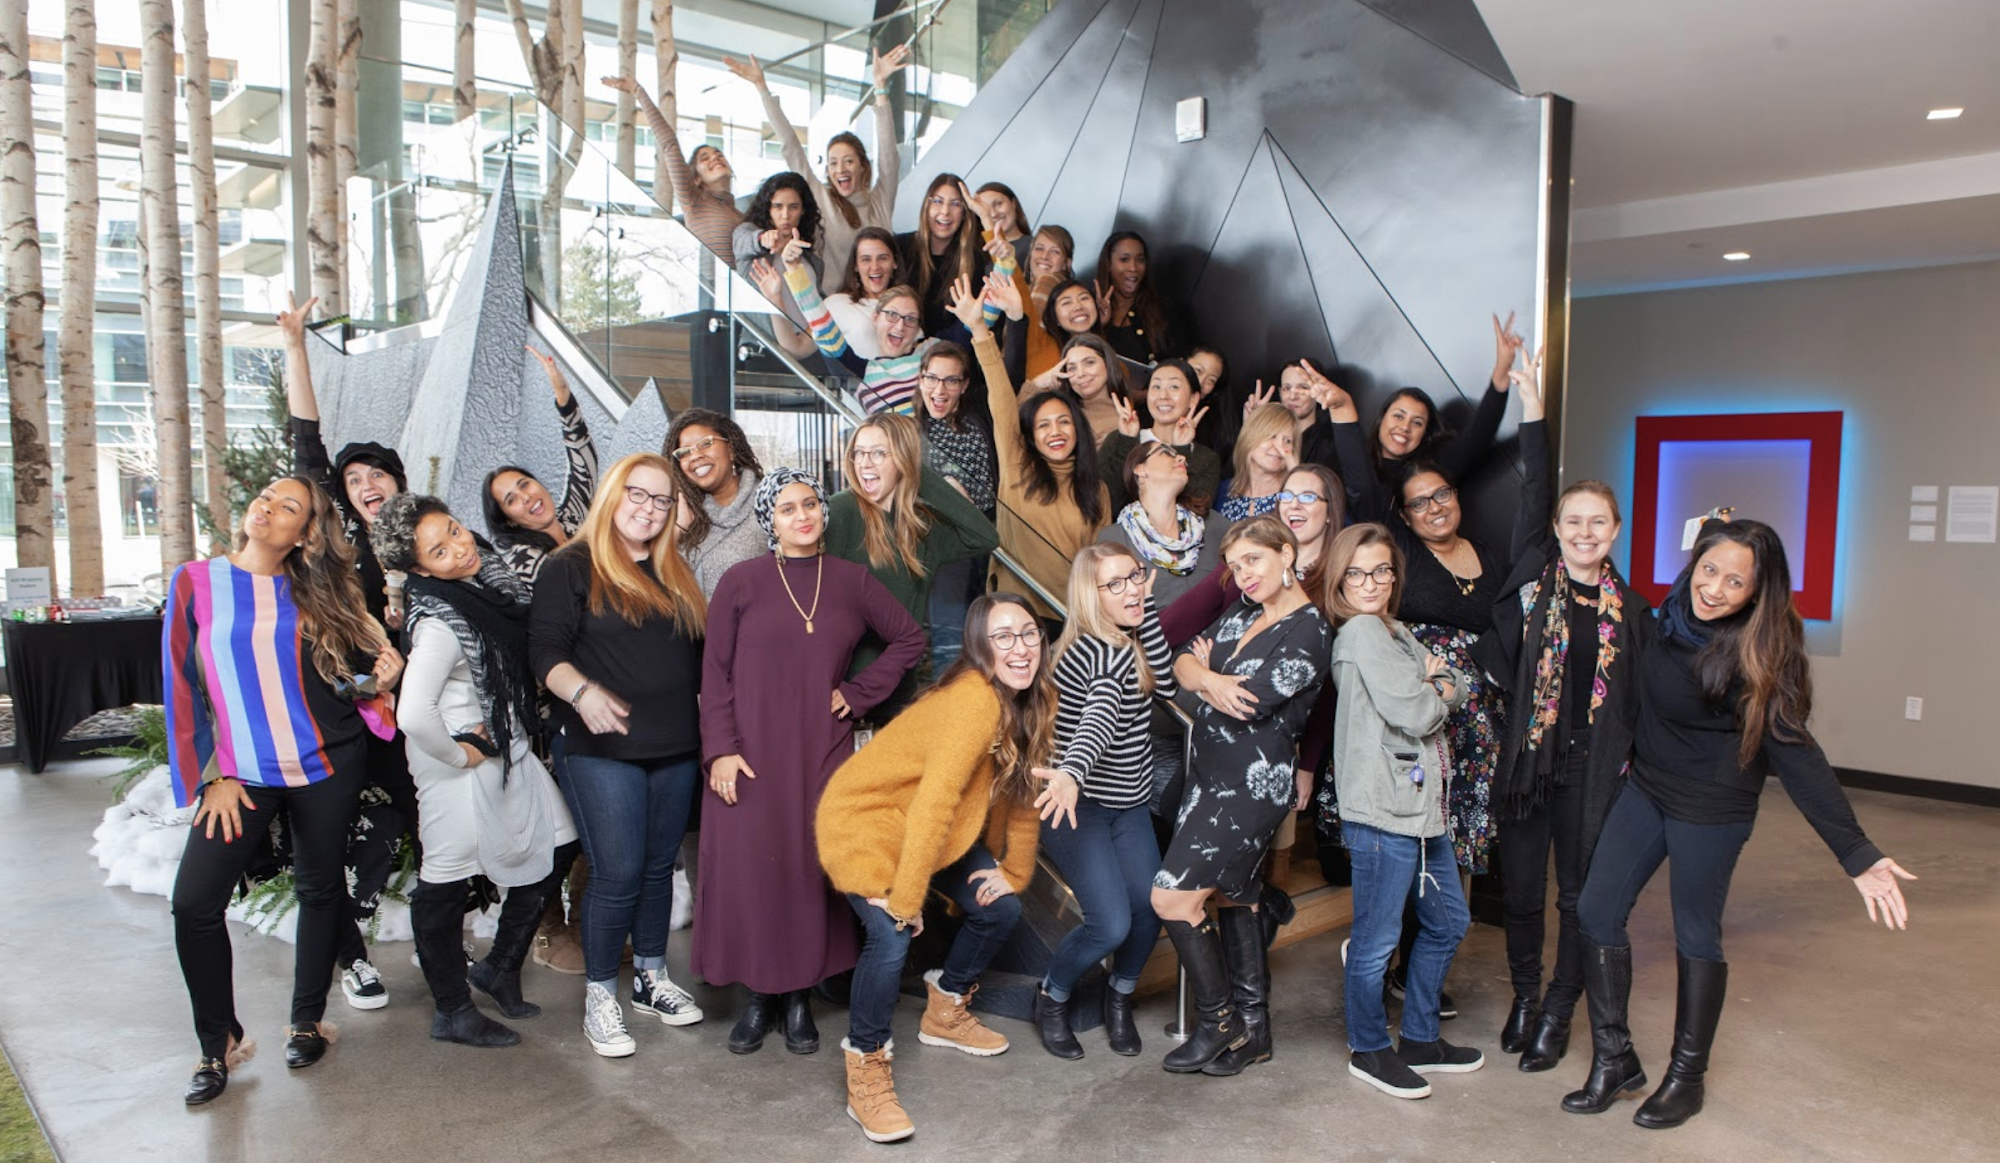 A look into one woman's job at Google: opening doors for other women